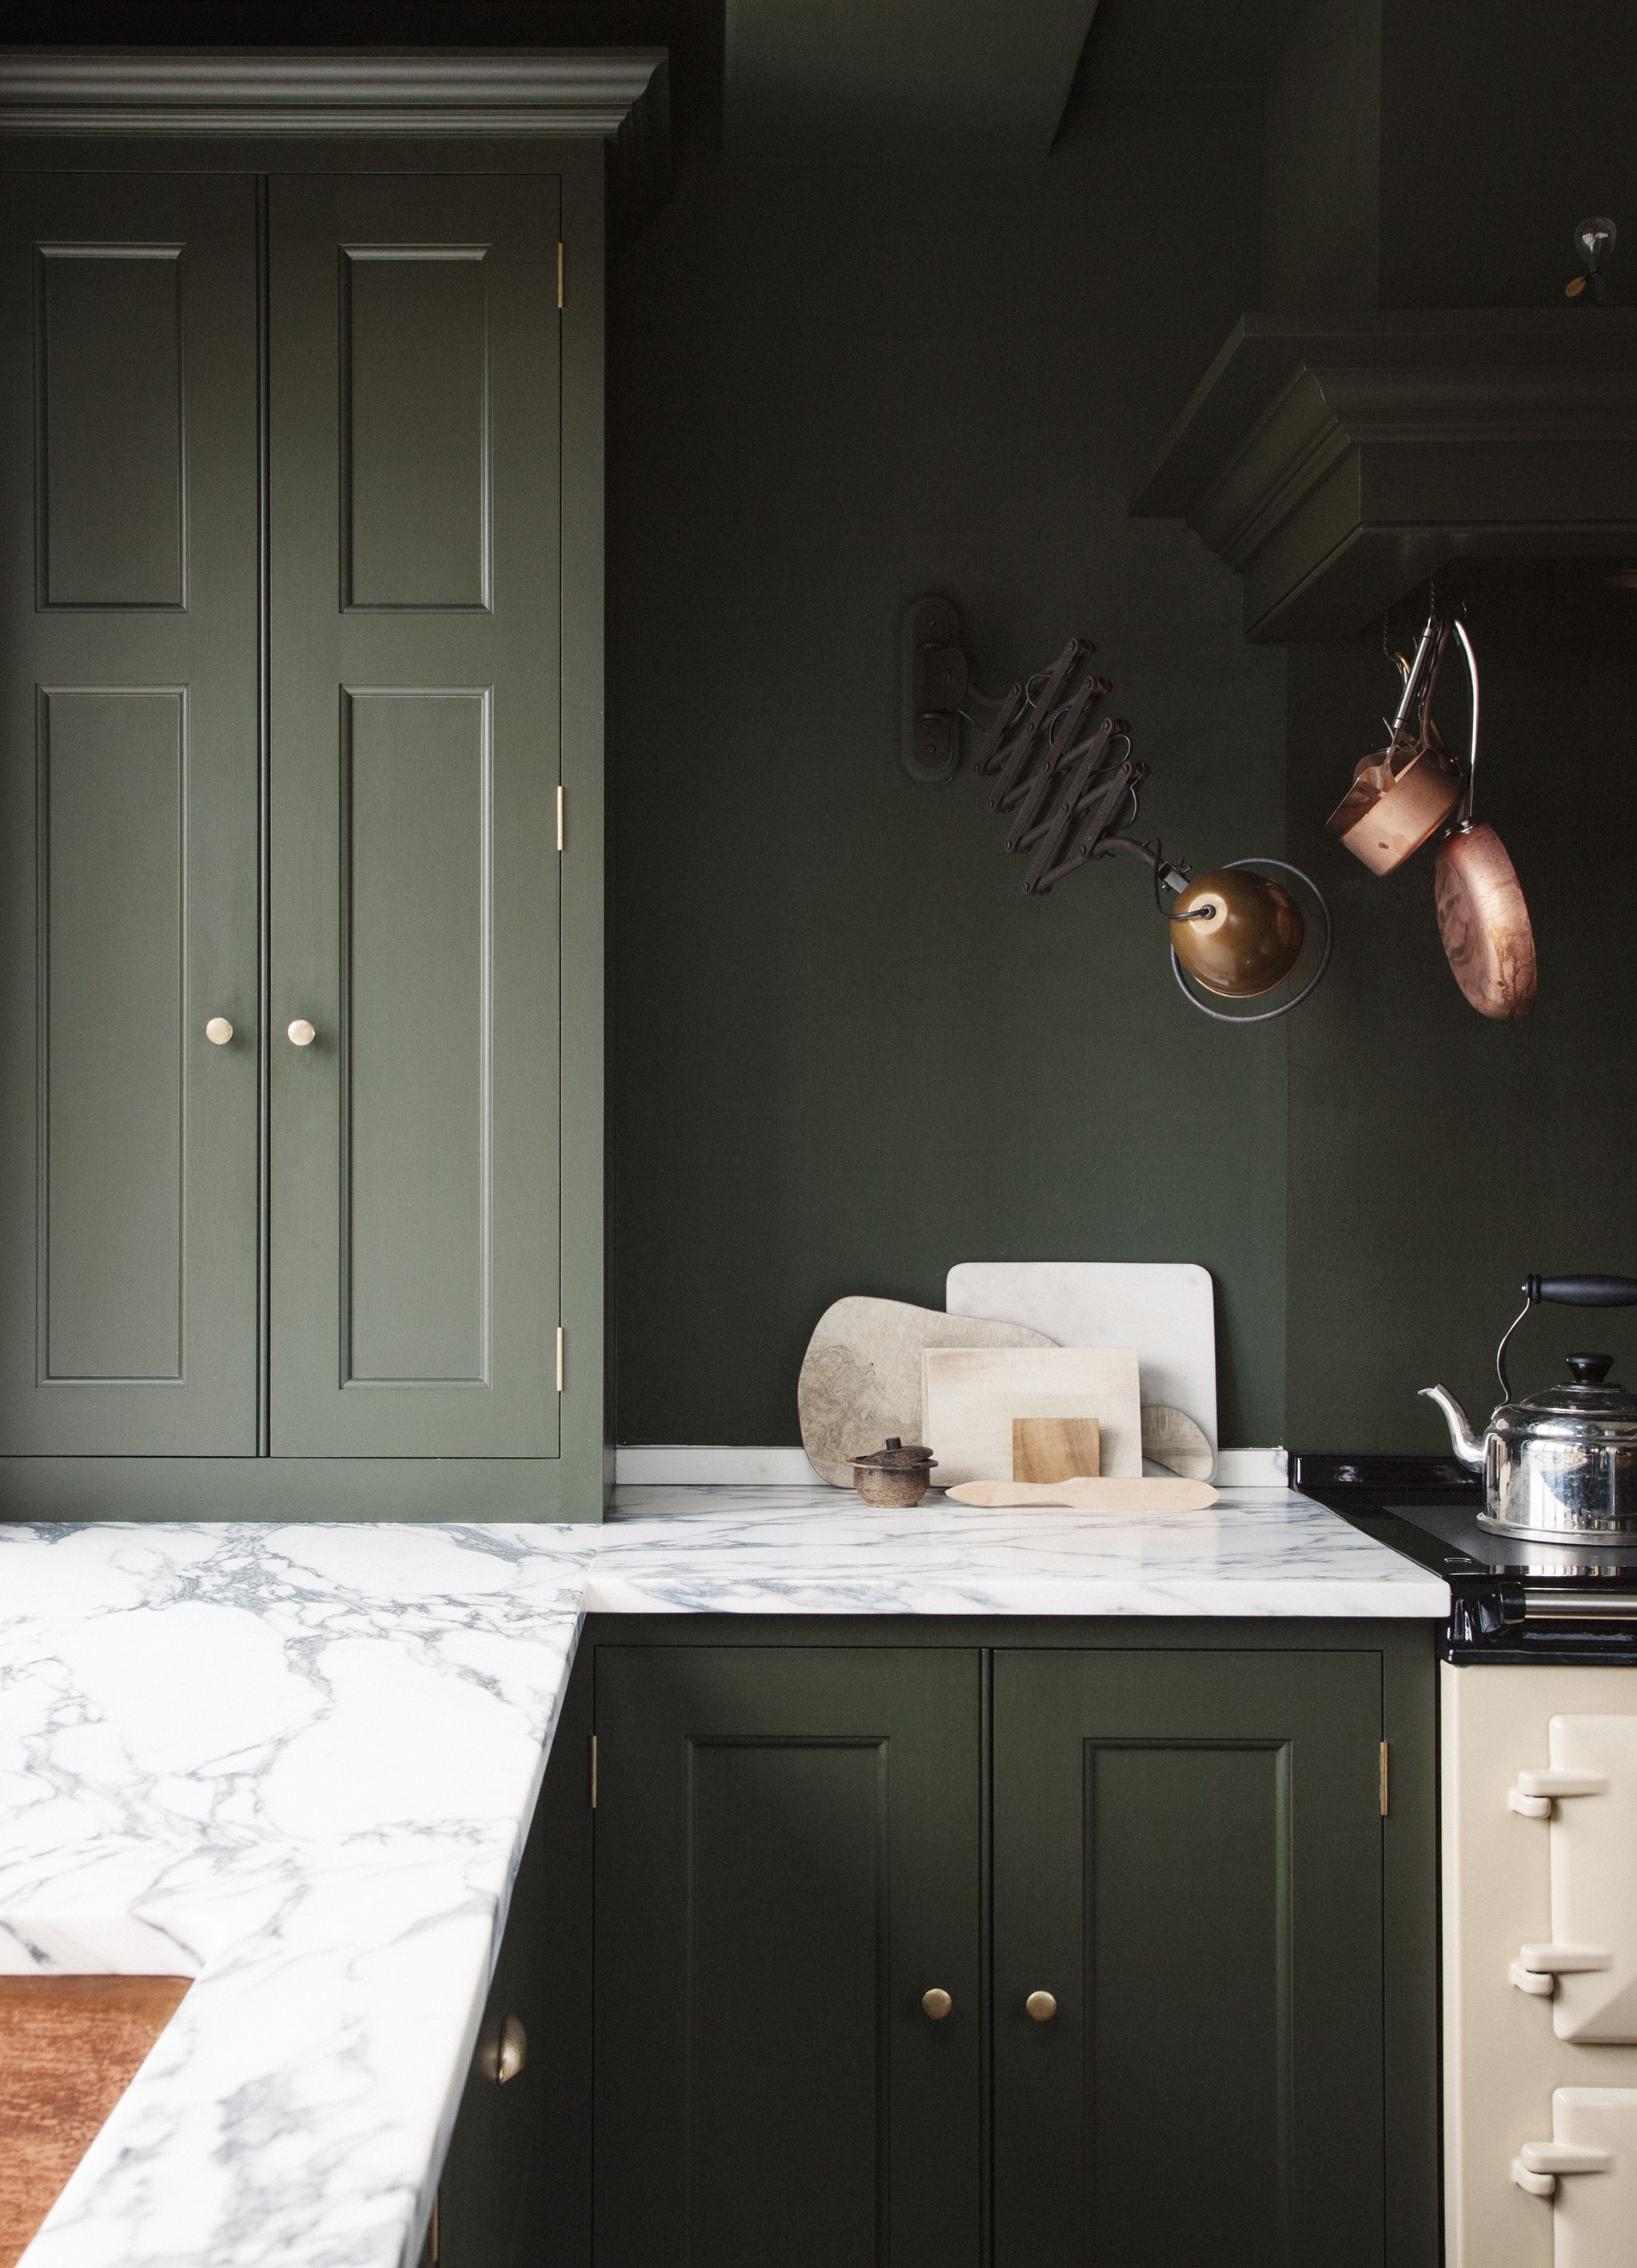 Green kitchen cabinet and matching wall colour for Green colors for kitchen walls